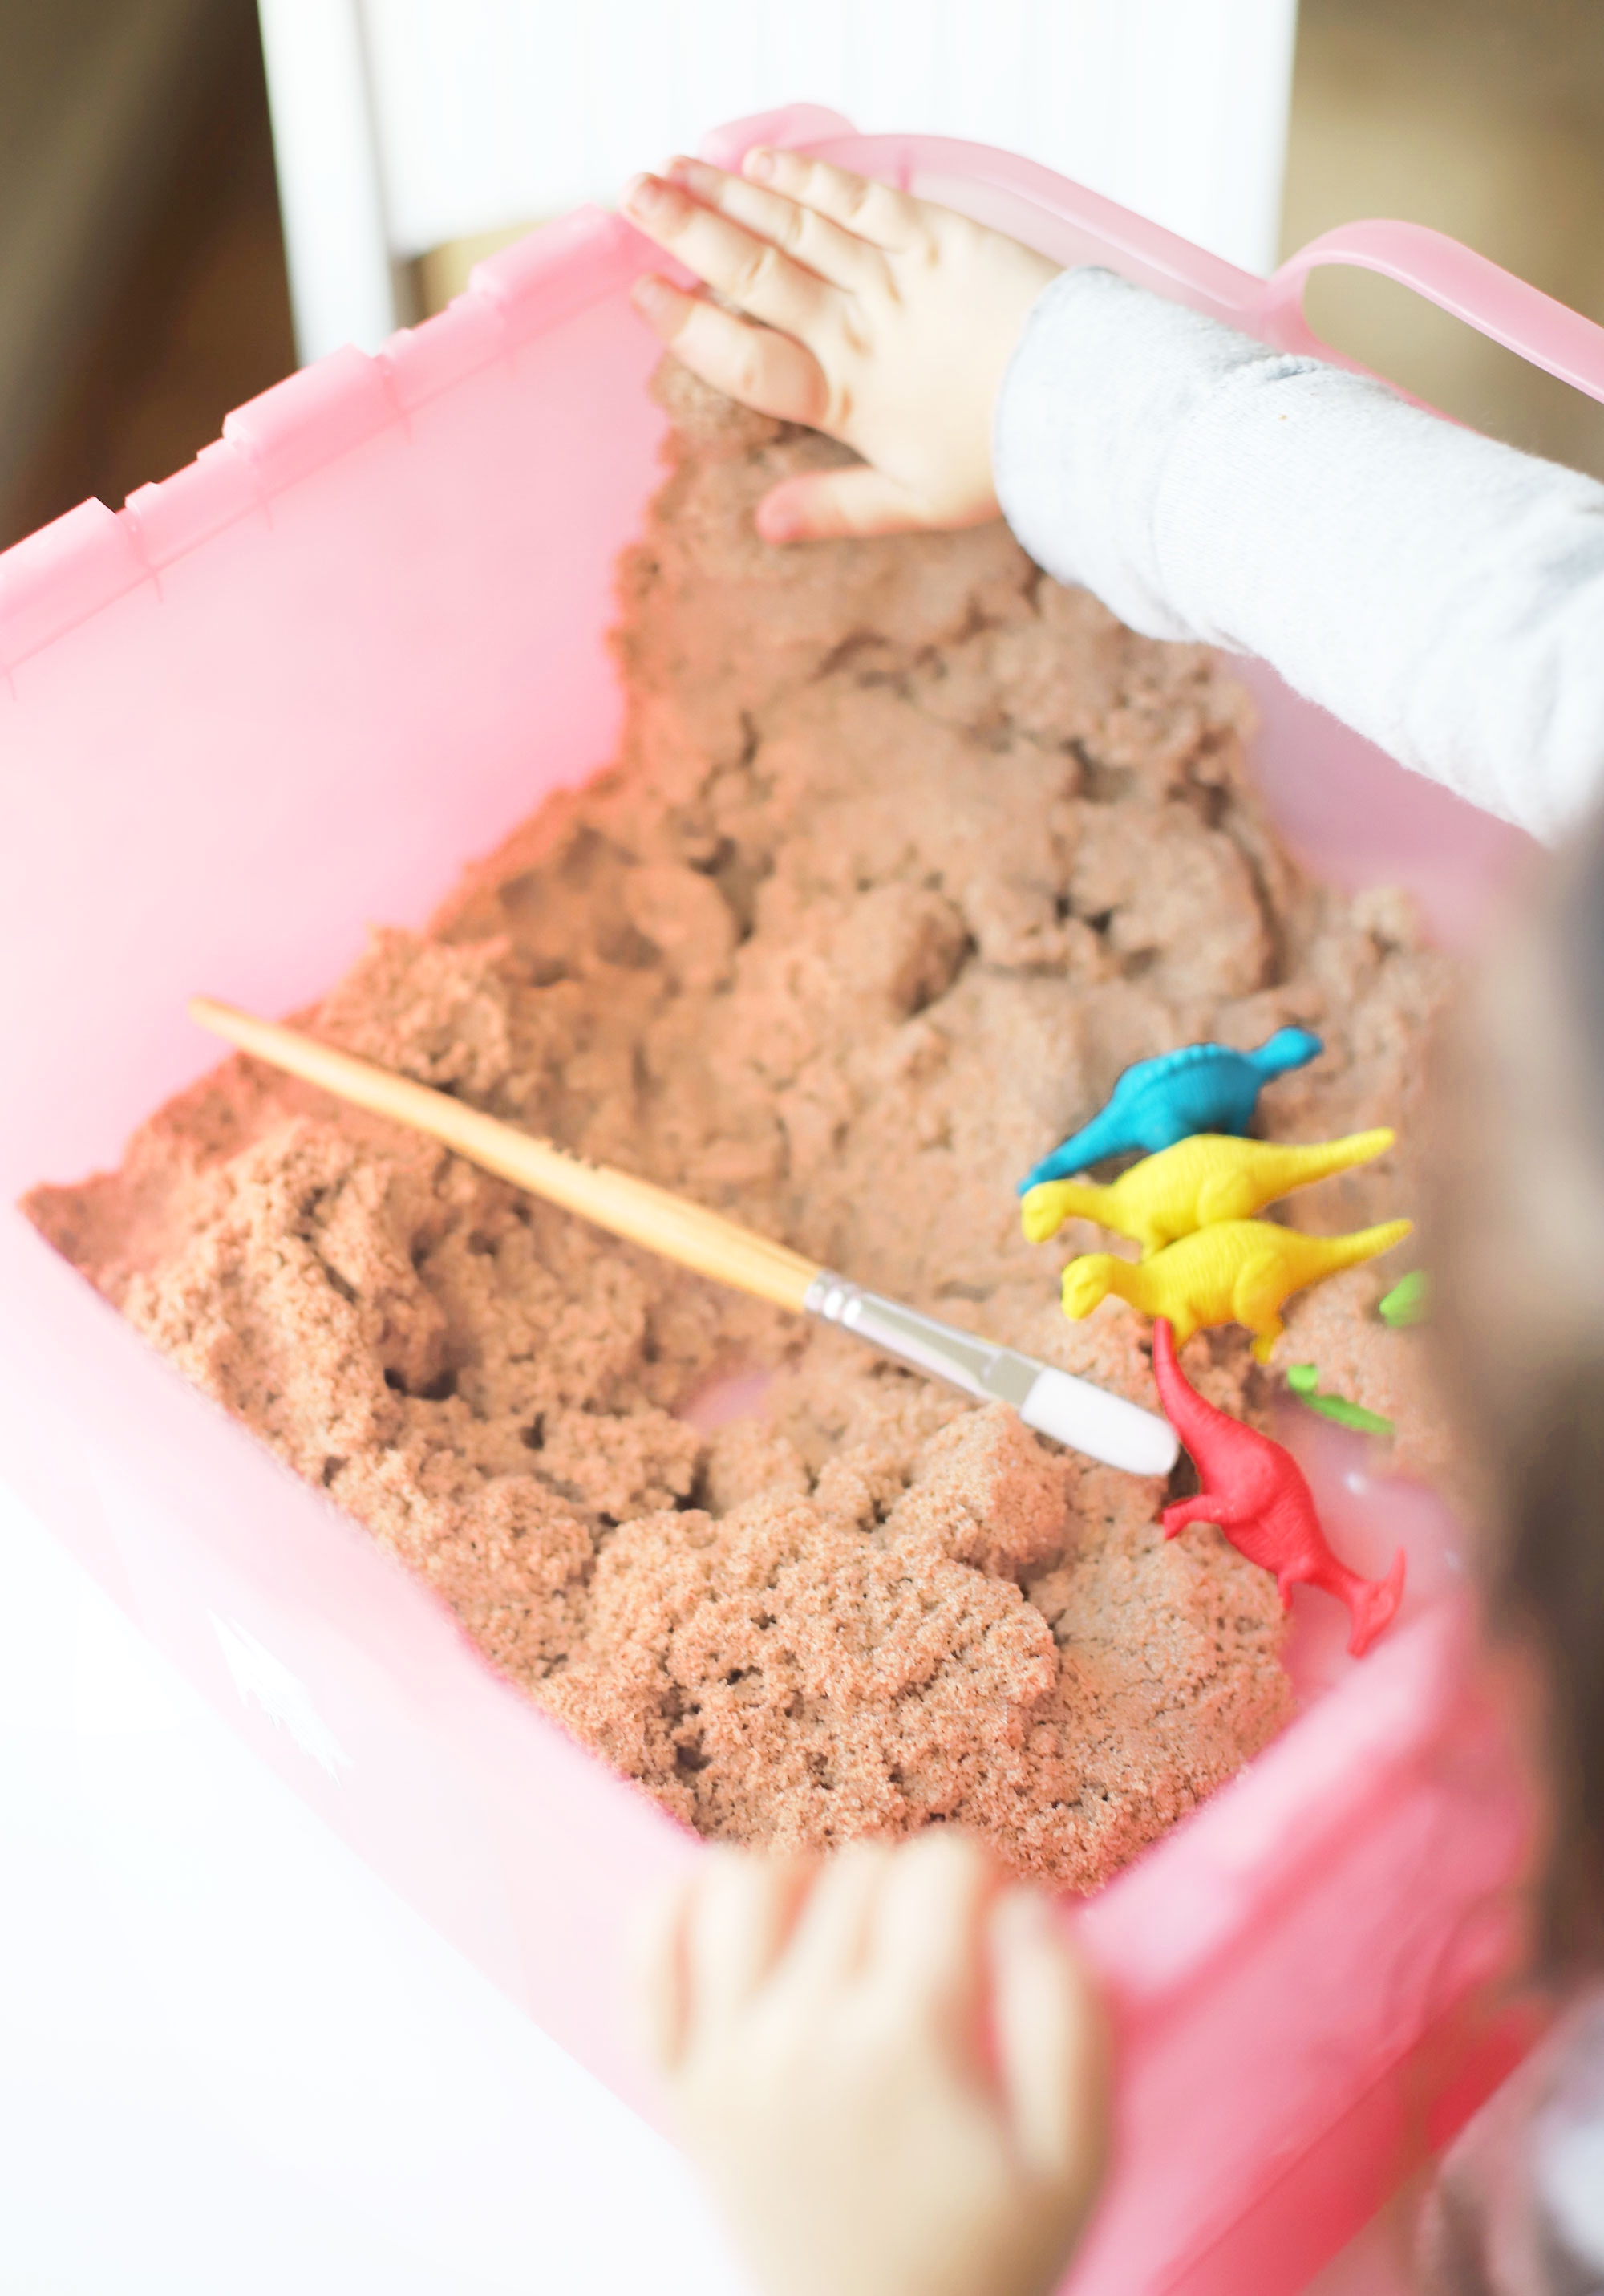 Create your own DIY kinetic sand dinosaur dig. This kids activity is an awesome, mostly mess-free way to dig into sensory play, all in one convenient bin.